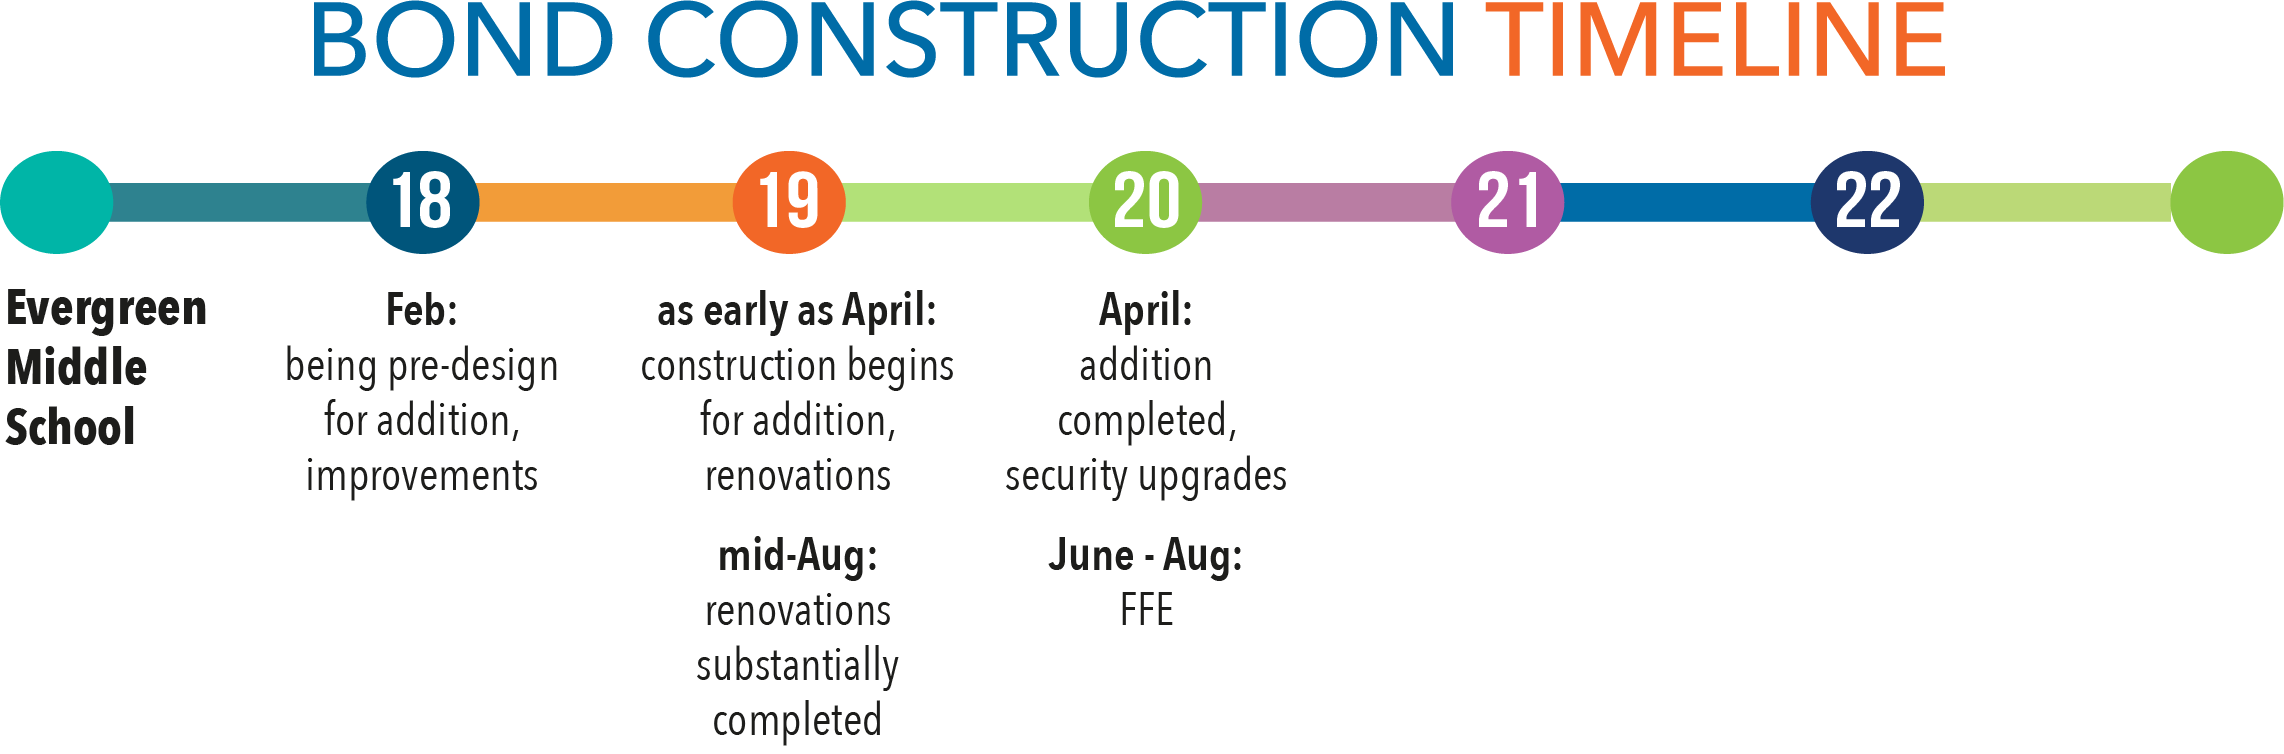 construction timeline for Evergreen